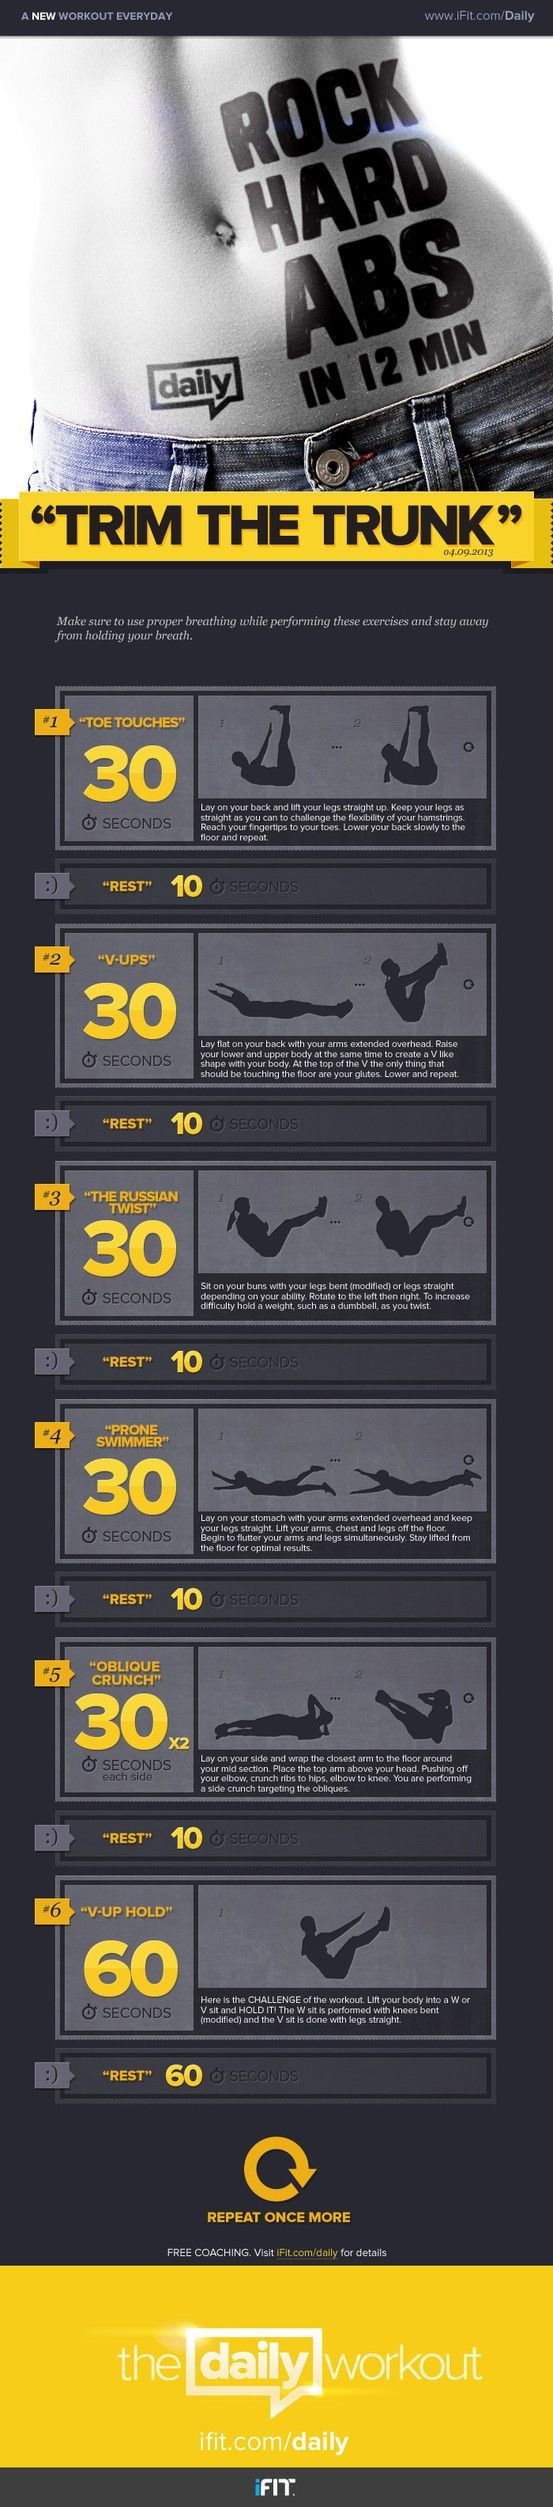 Short yet effective ab workout